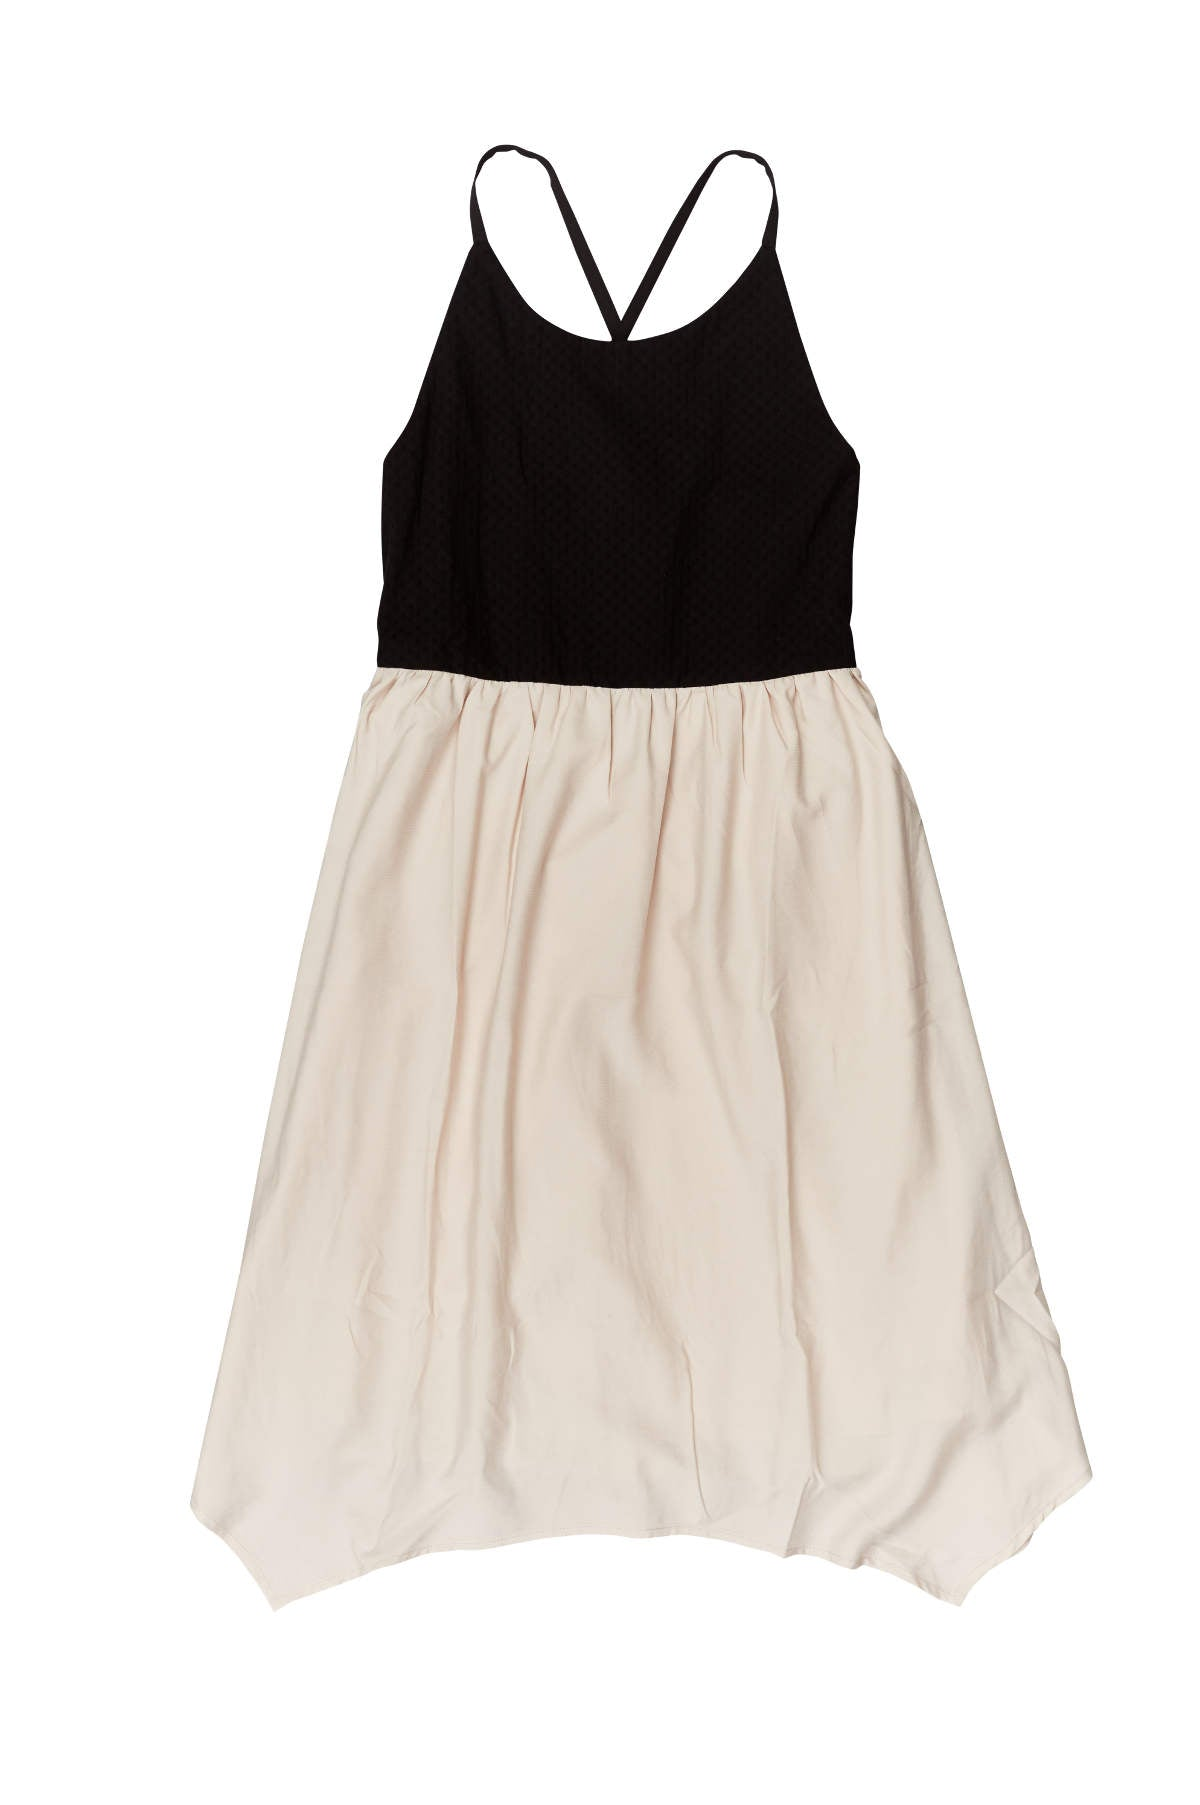 GEM Girls Handkie Sleeveless Beige & Black Dress